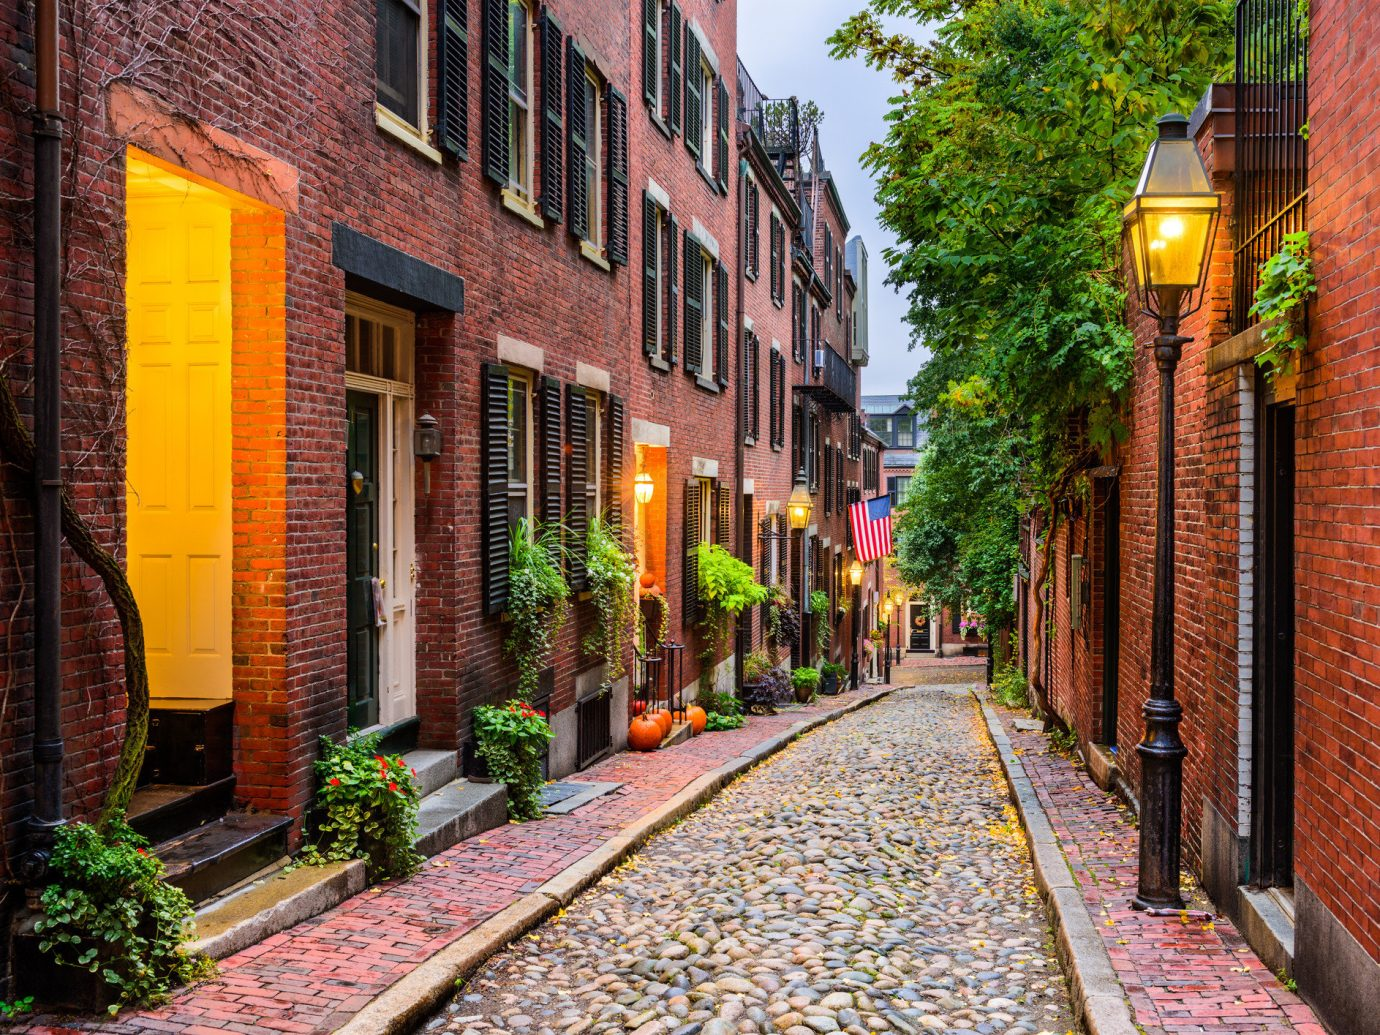 Boston Jetsetter Guides Offbeat Trip Ideas Weekend Getaways building outdoor way color scene brick road alley Town street neighbourhood lane City urban area human settlement residential area sidewalk infrastructure autumn Downtown cityscape flower Village track Courtyard